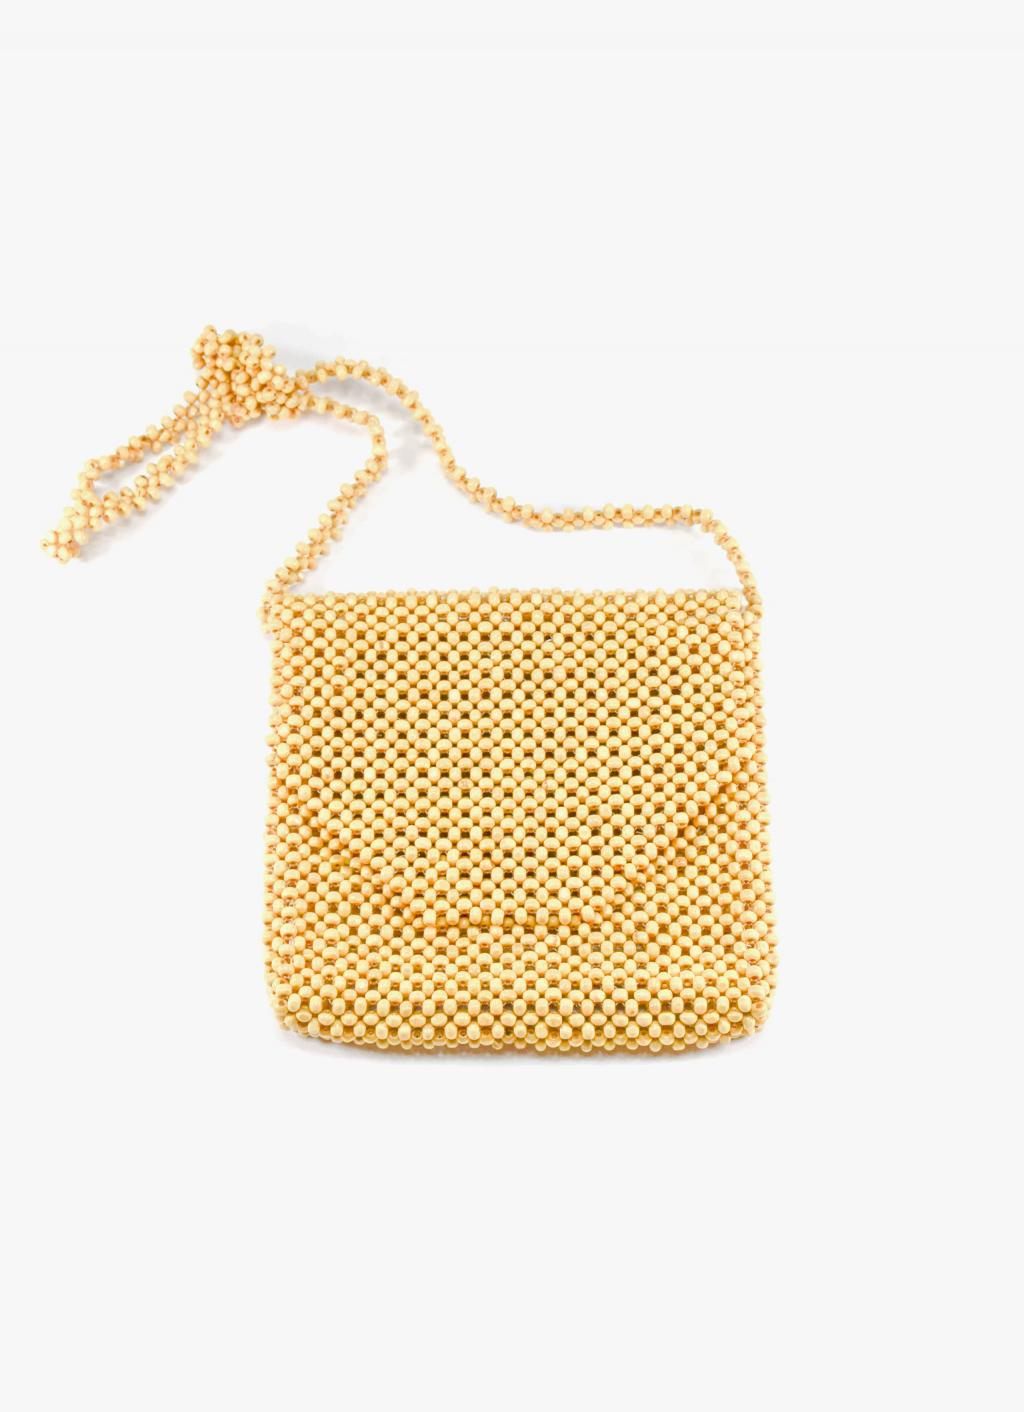 Abaca - Ligaw Wood Sling Bag - Oat